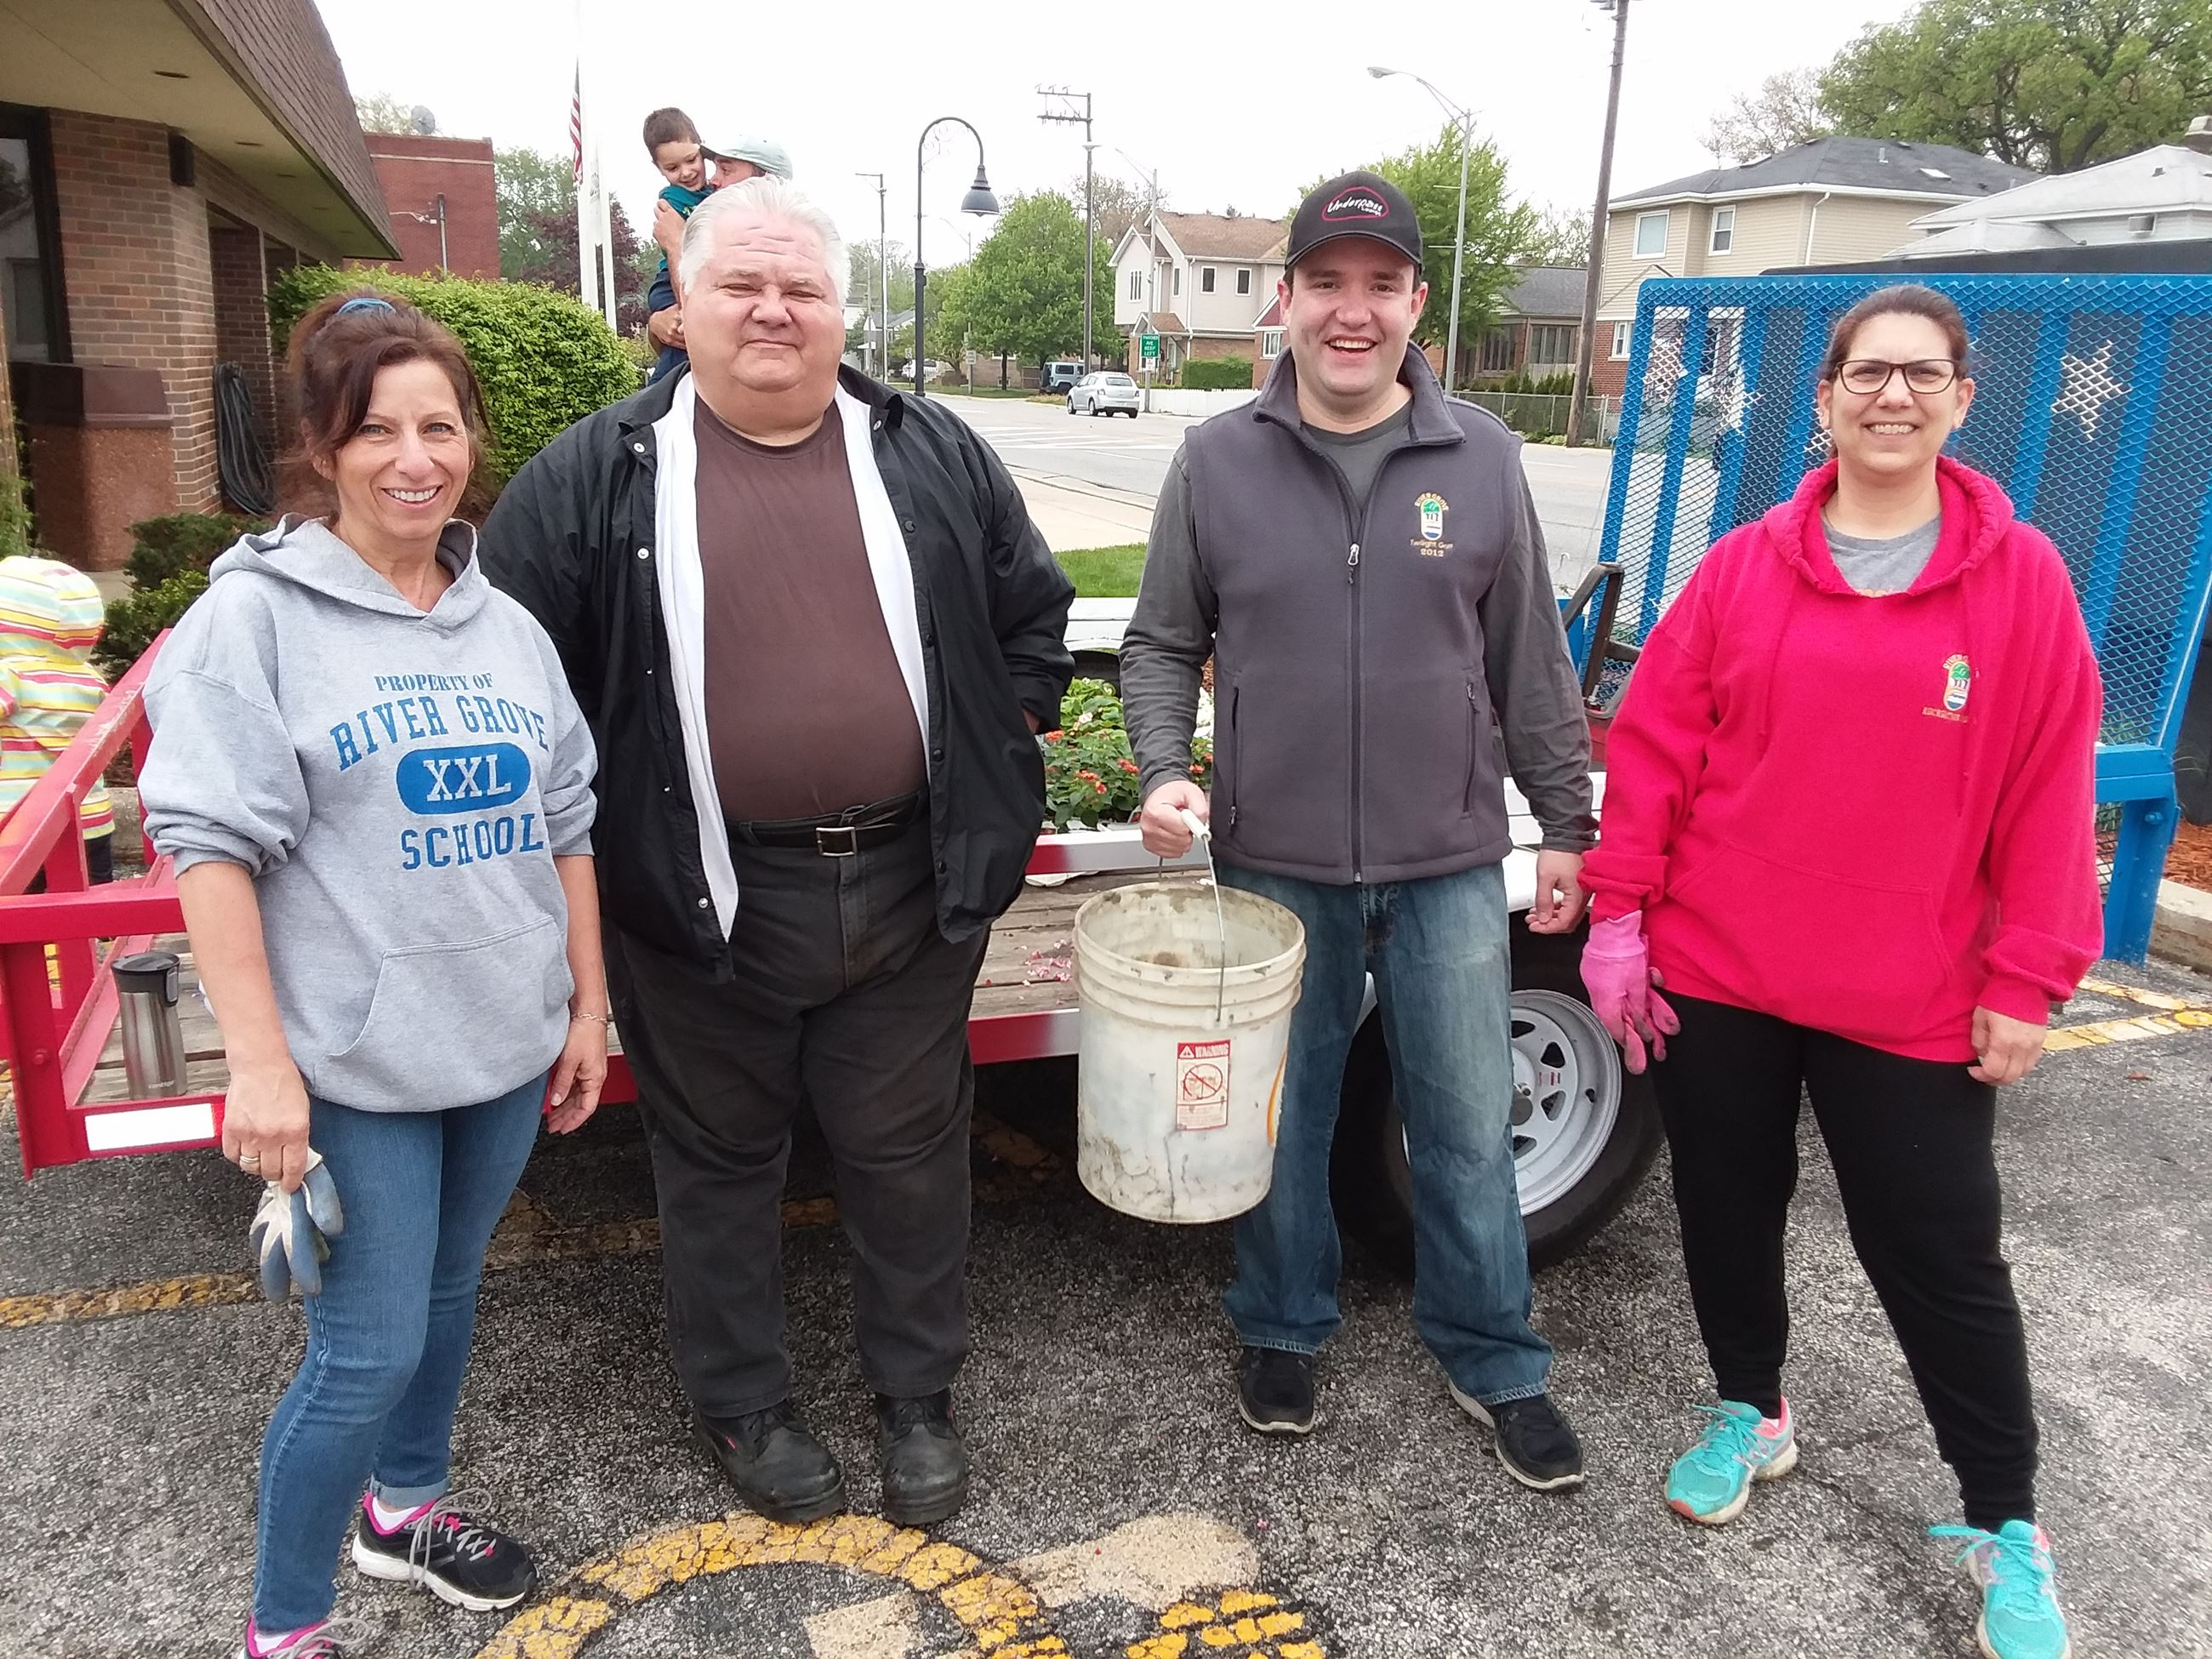 Mayor Guerin and Planting Day volunteers standing together outside Village Hall